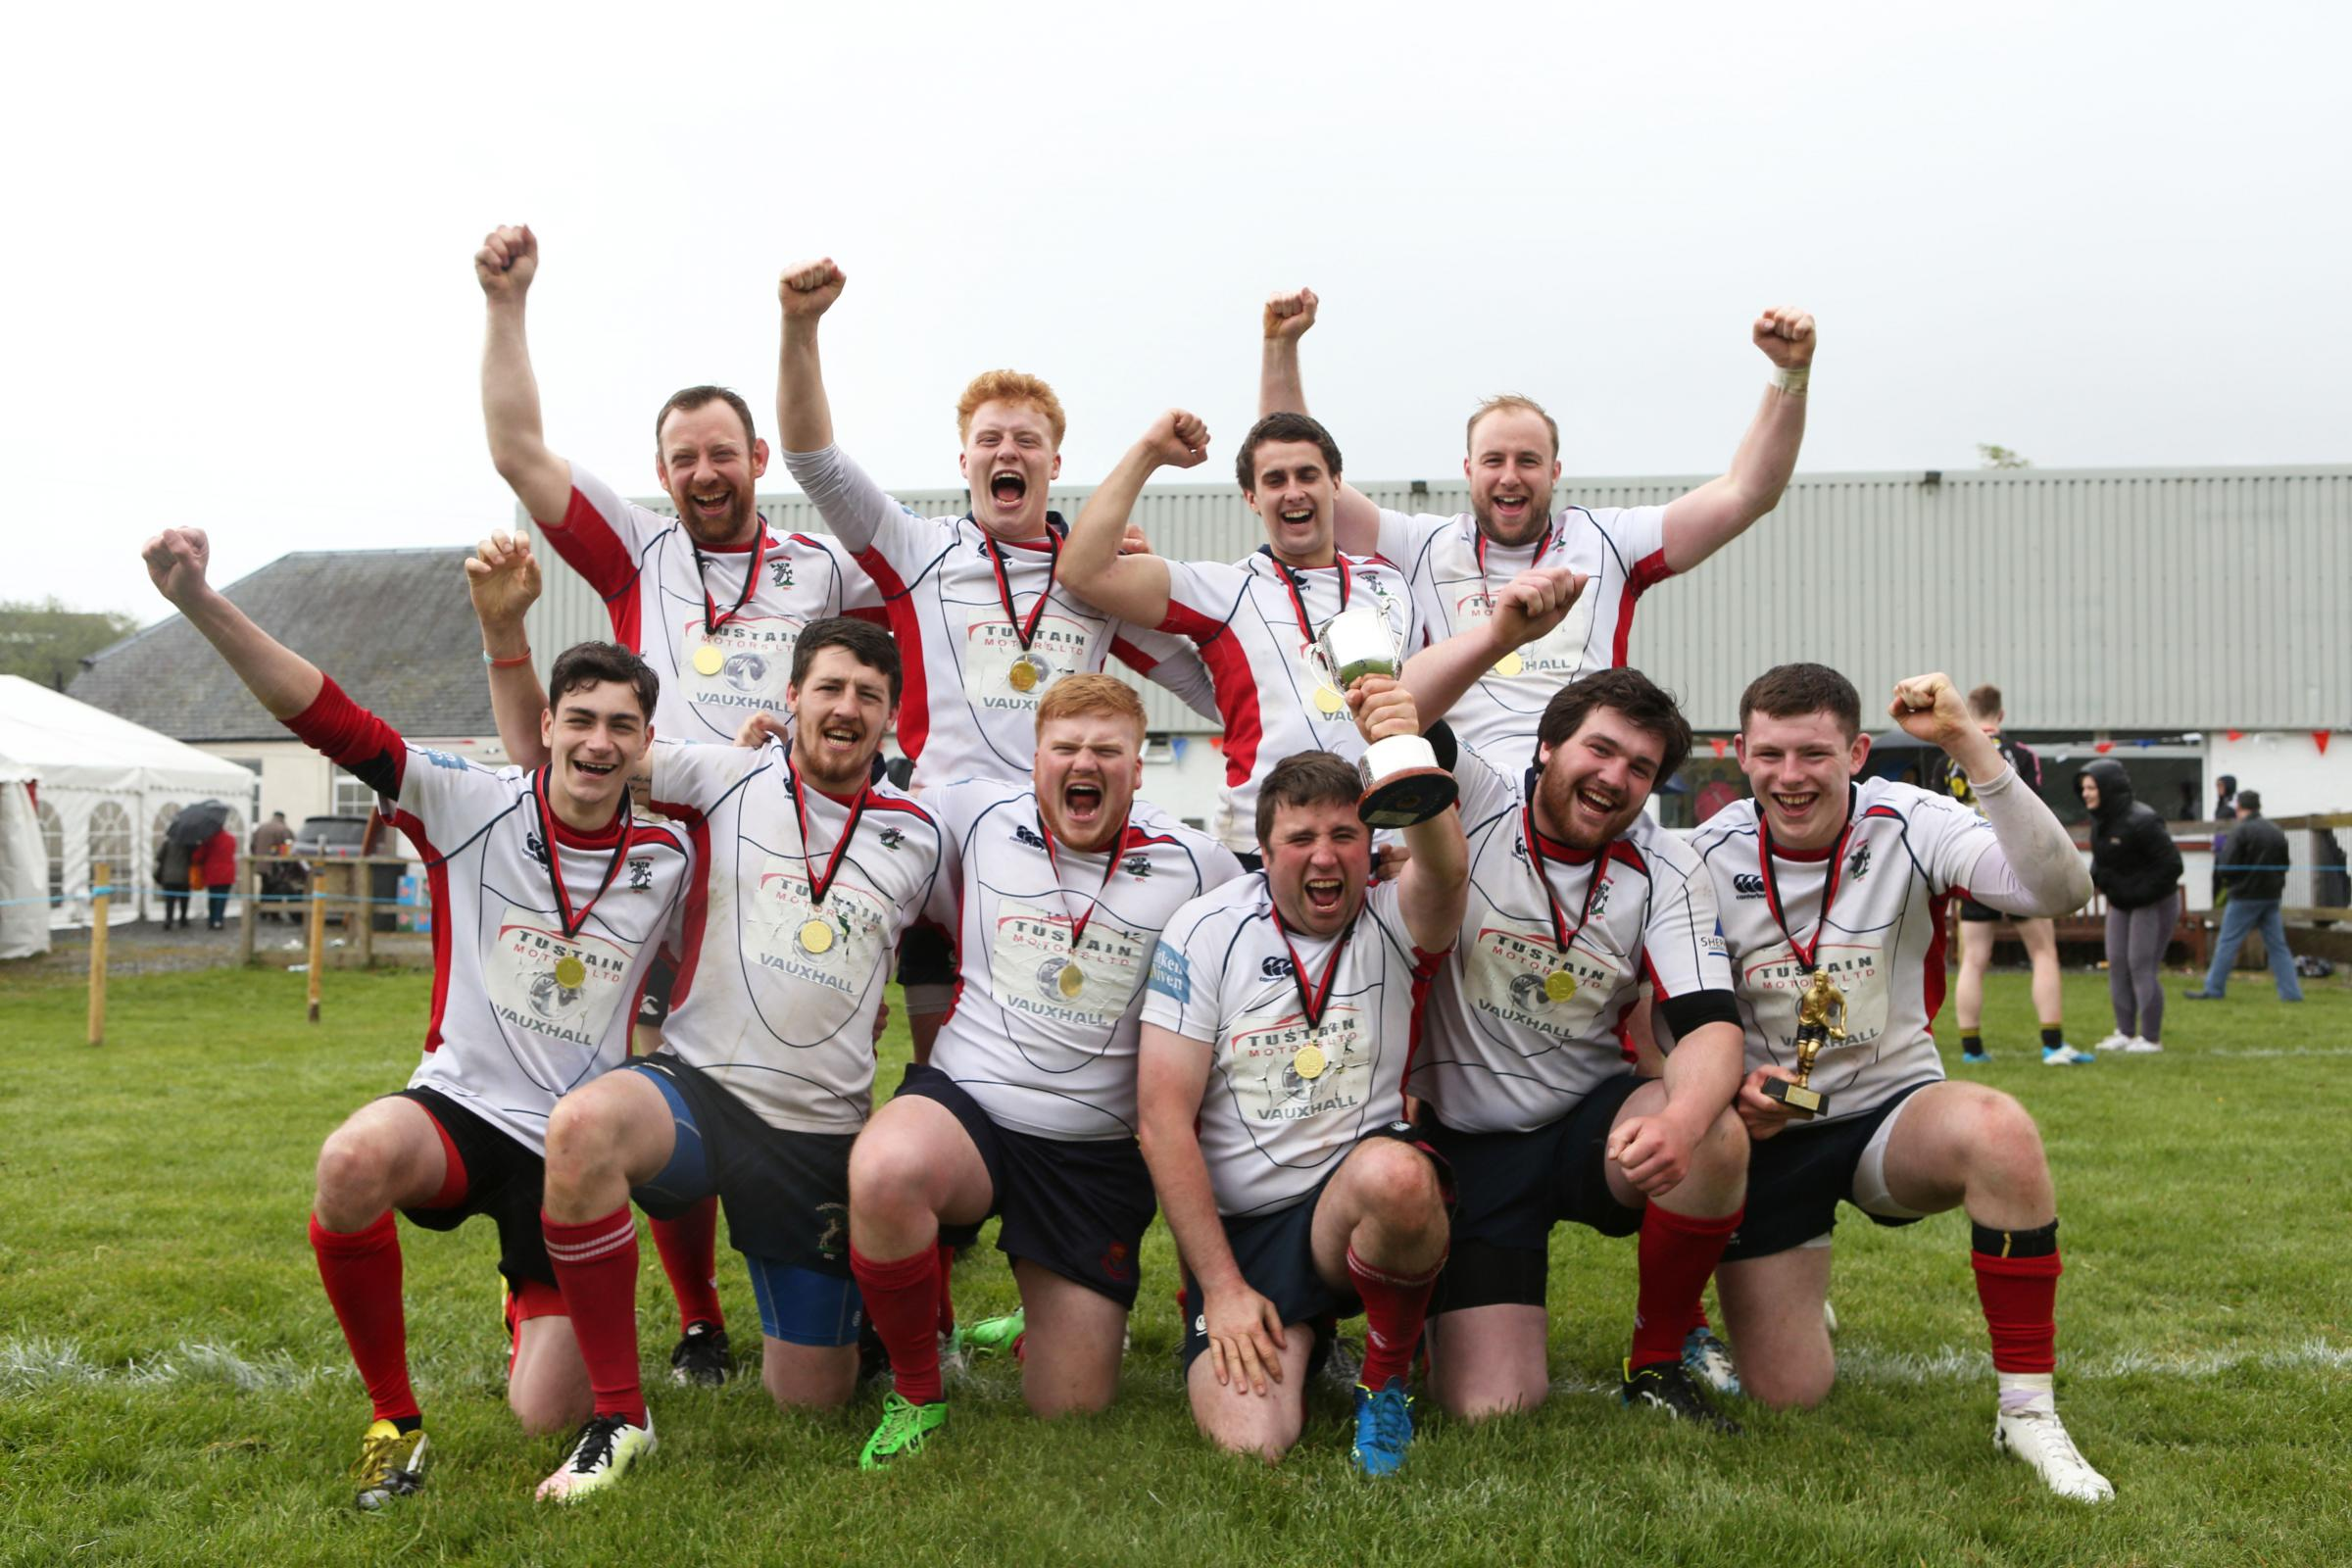 Haddington were last year's winners of Walkerburn 7s